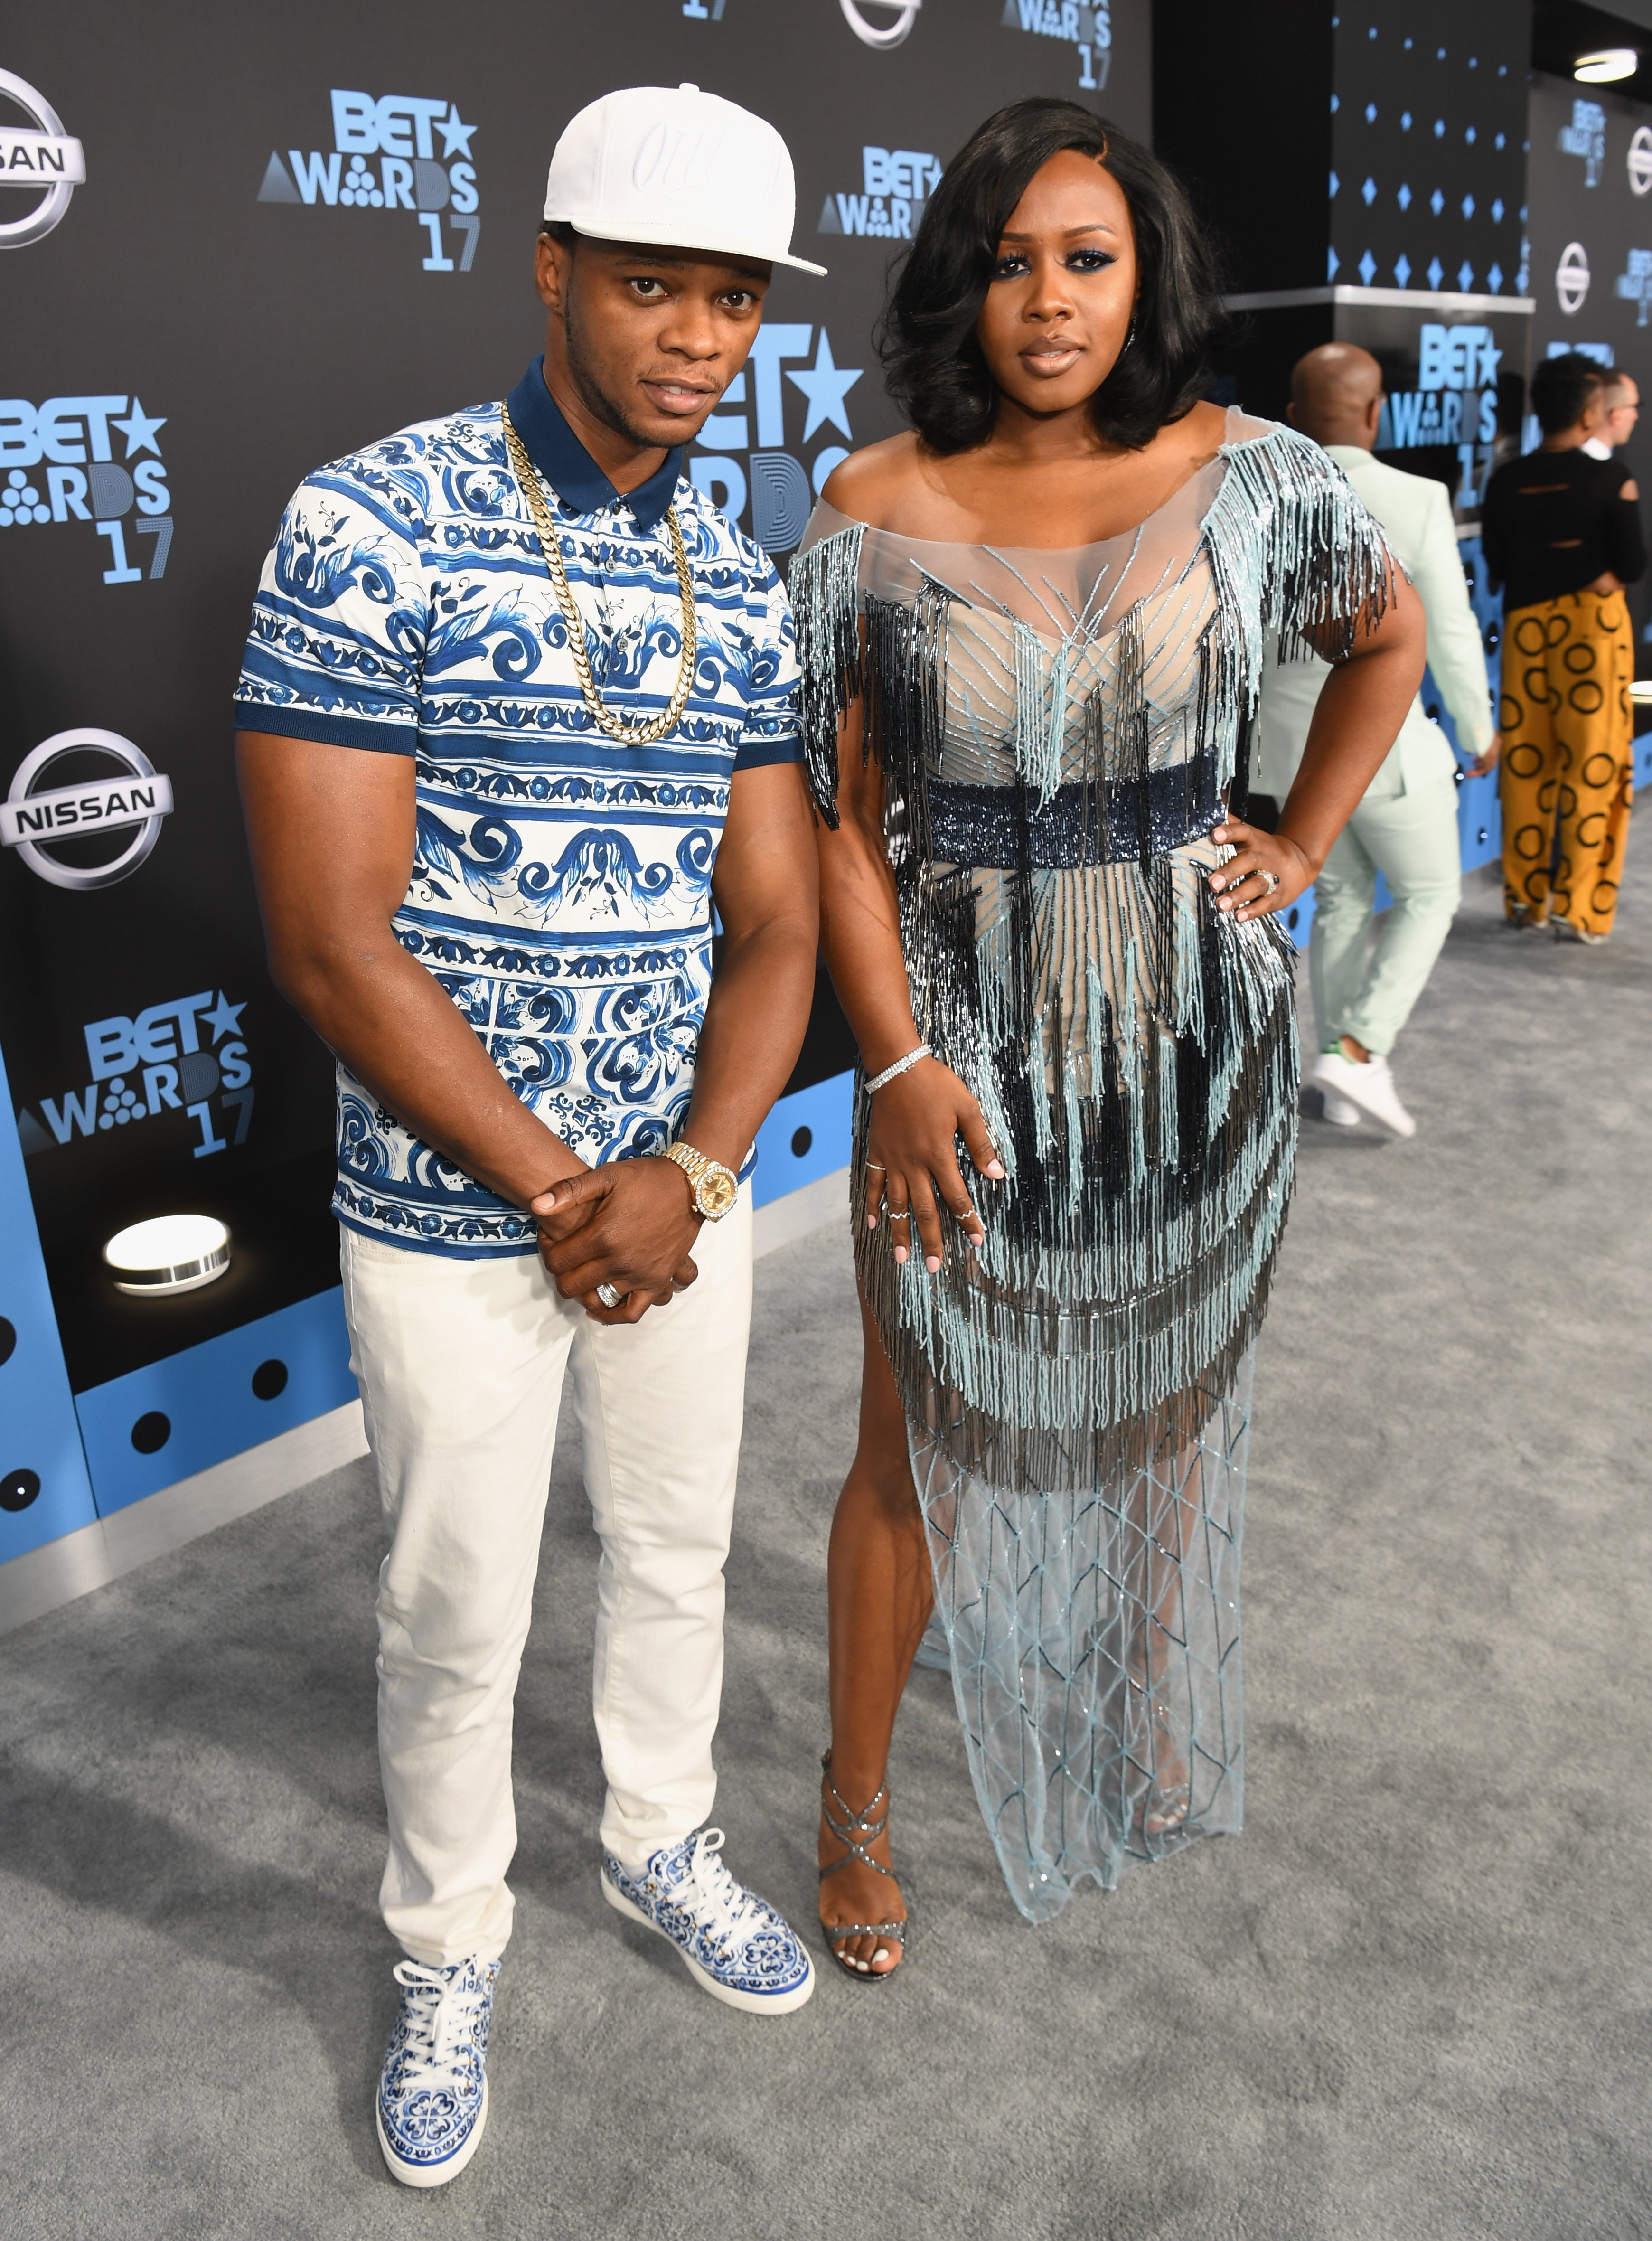 Papoose Celebrates Wife Remy Ma's Big BET Awards Win